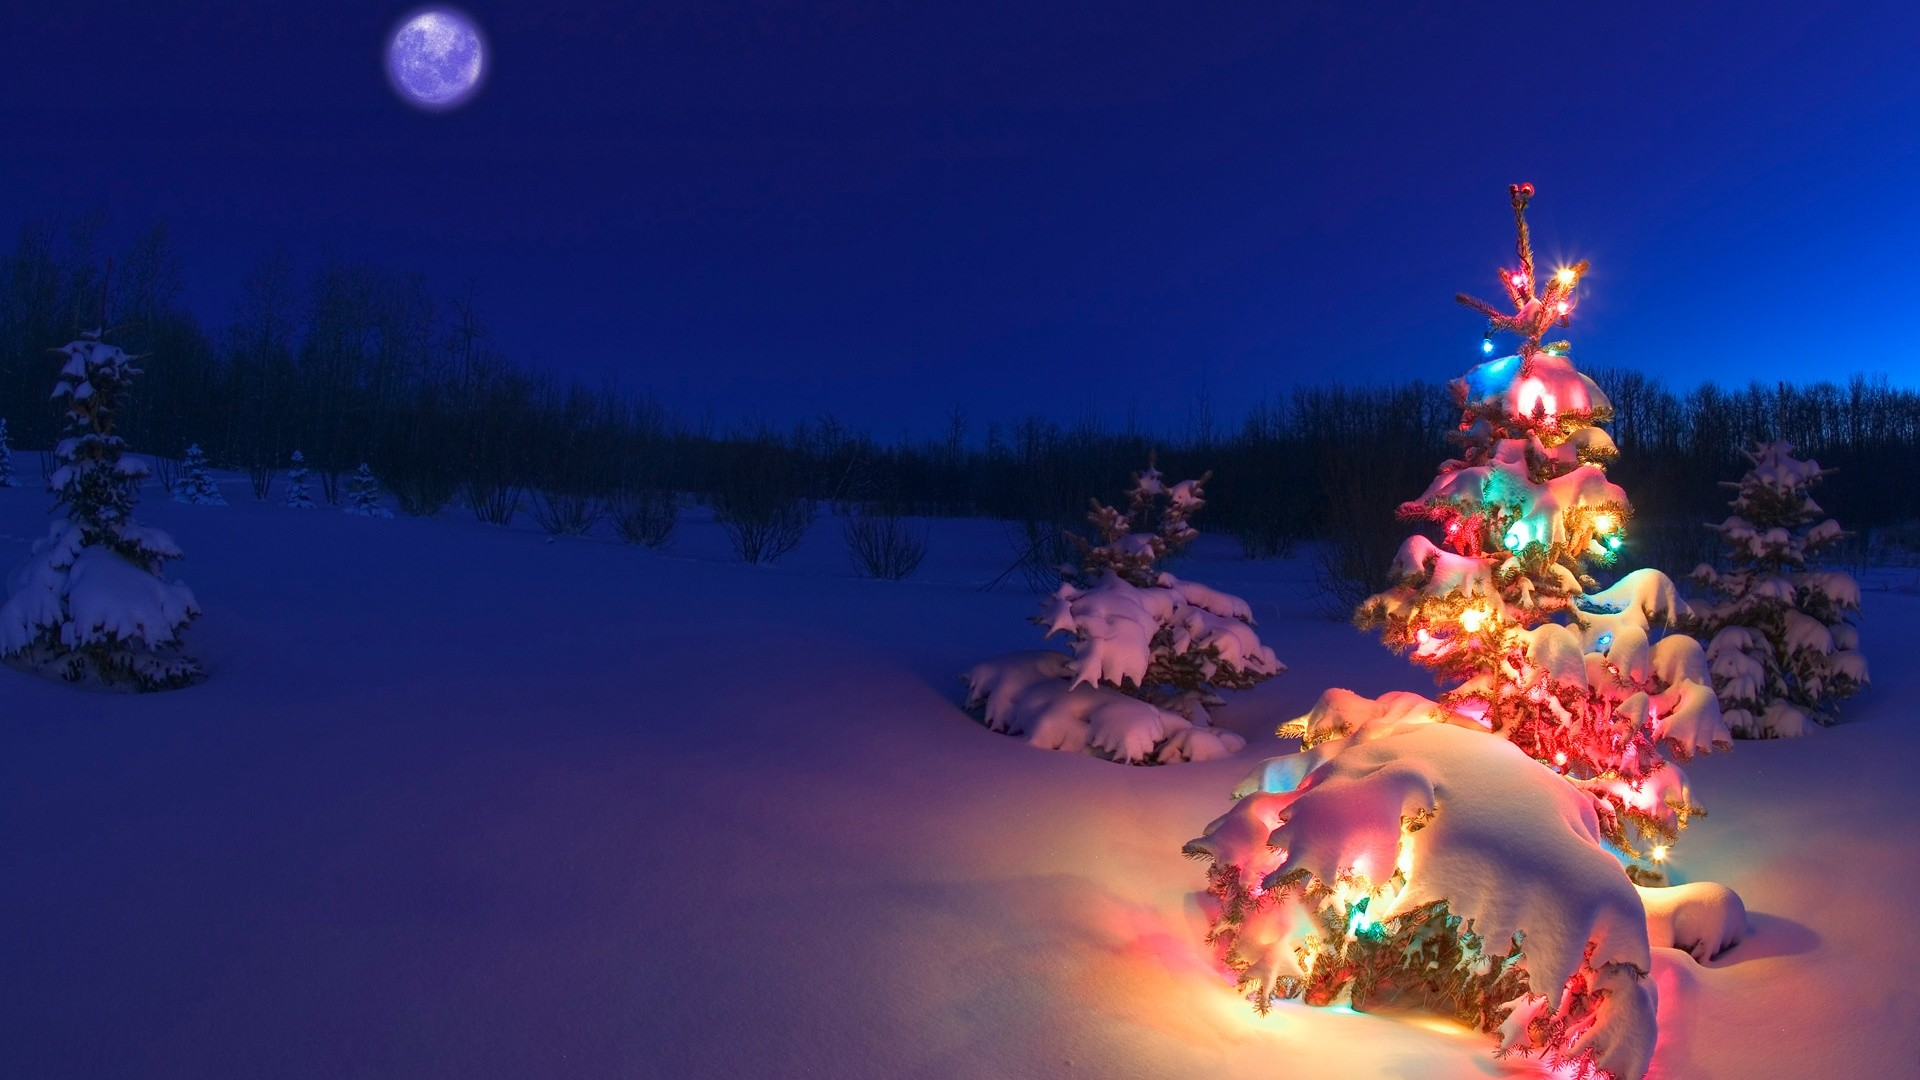 1920x1080 hd christmas wallpapers for free amazing images background photos windows  wallpapers download free images widescreen desktop backgrounds dual  monitors ...